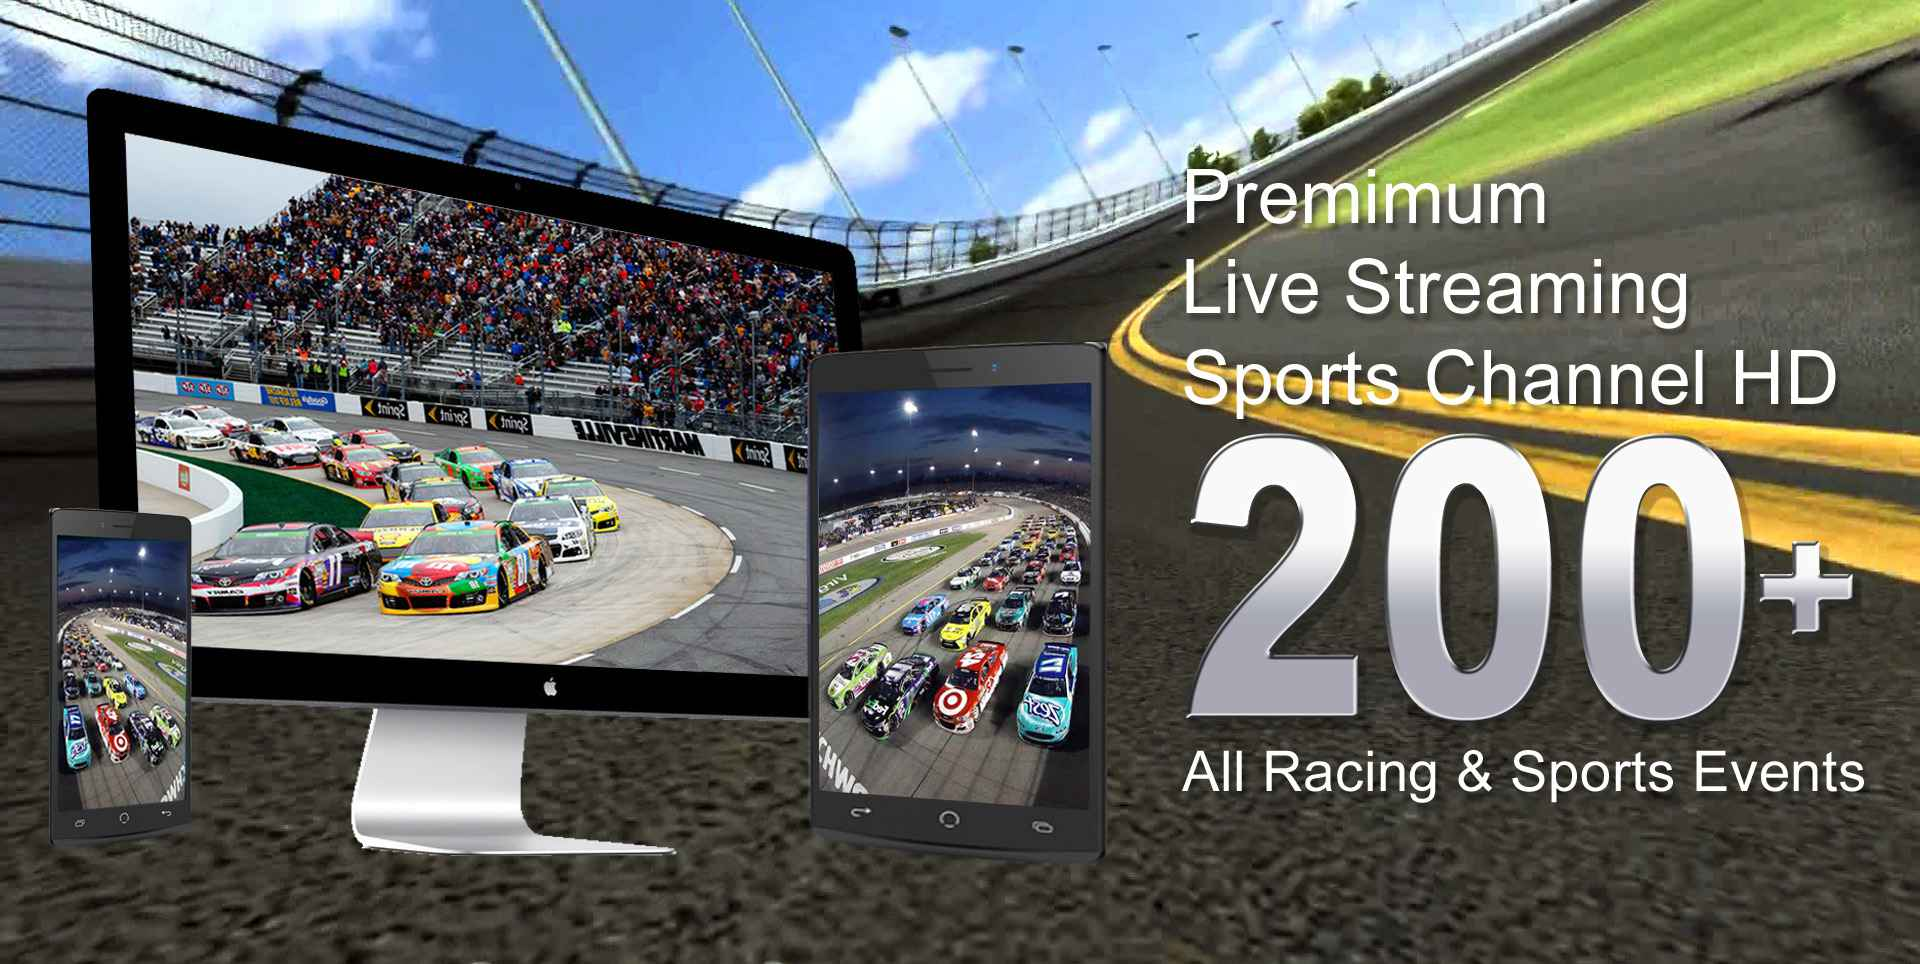 nascar%20lilly%20diabetes%20race%202015%20live%201 Nascar Lilly Diabetes 250 Race 2015 Live